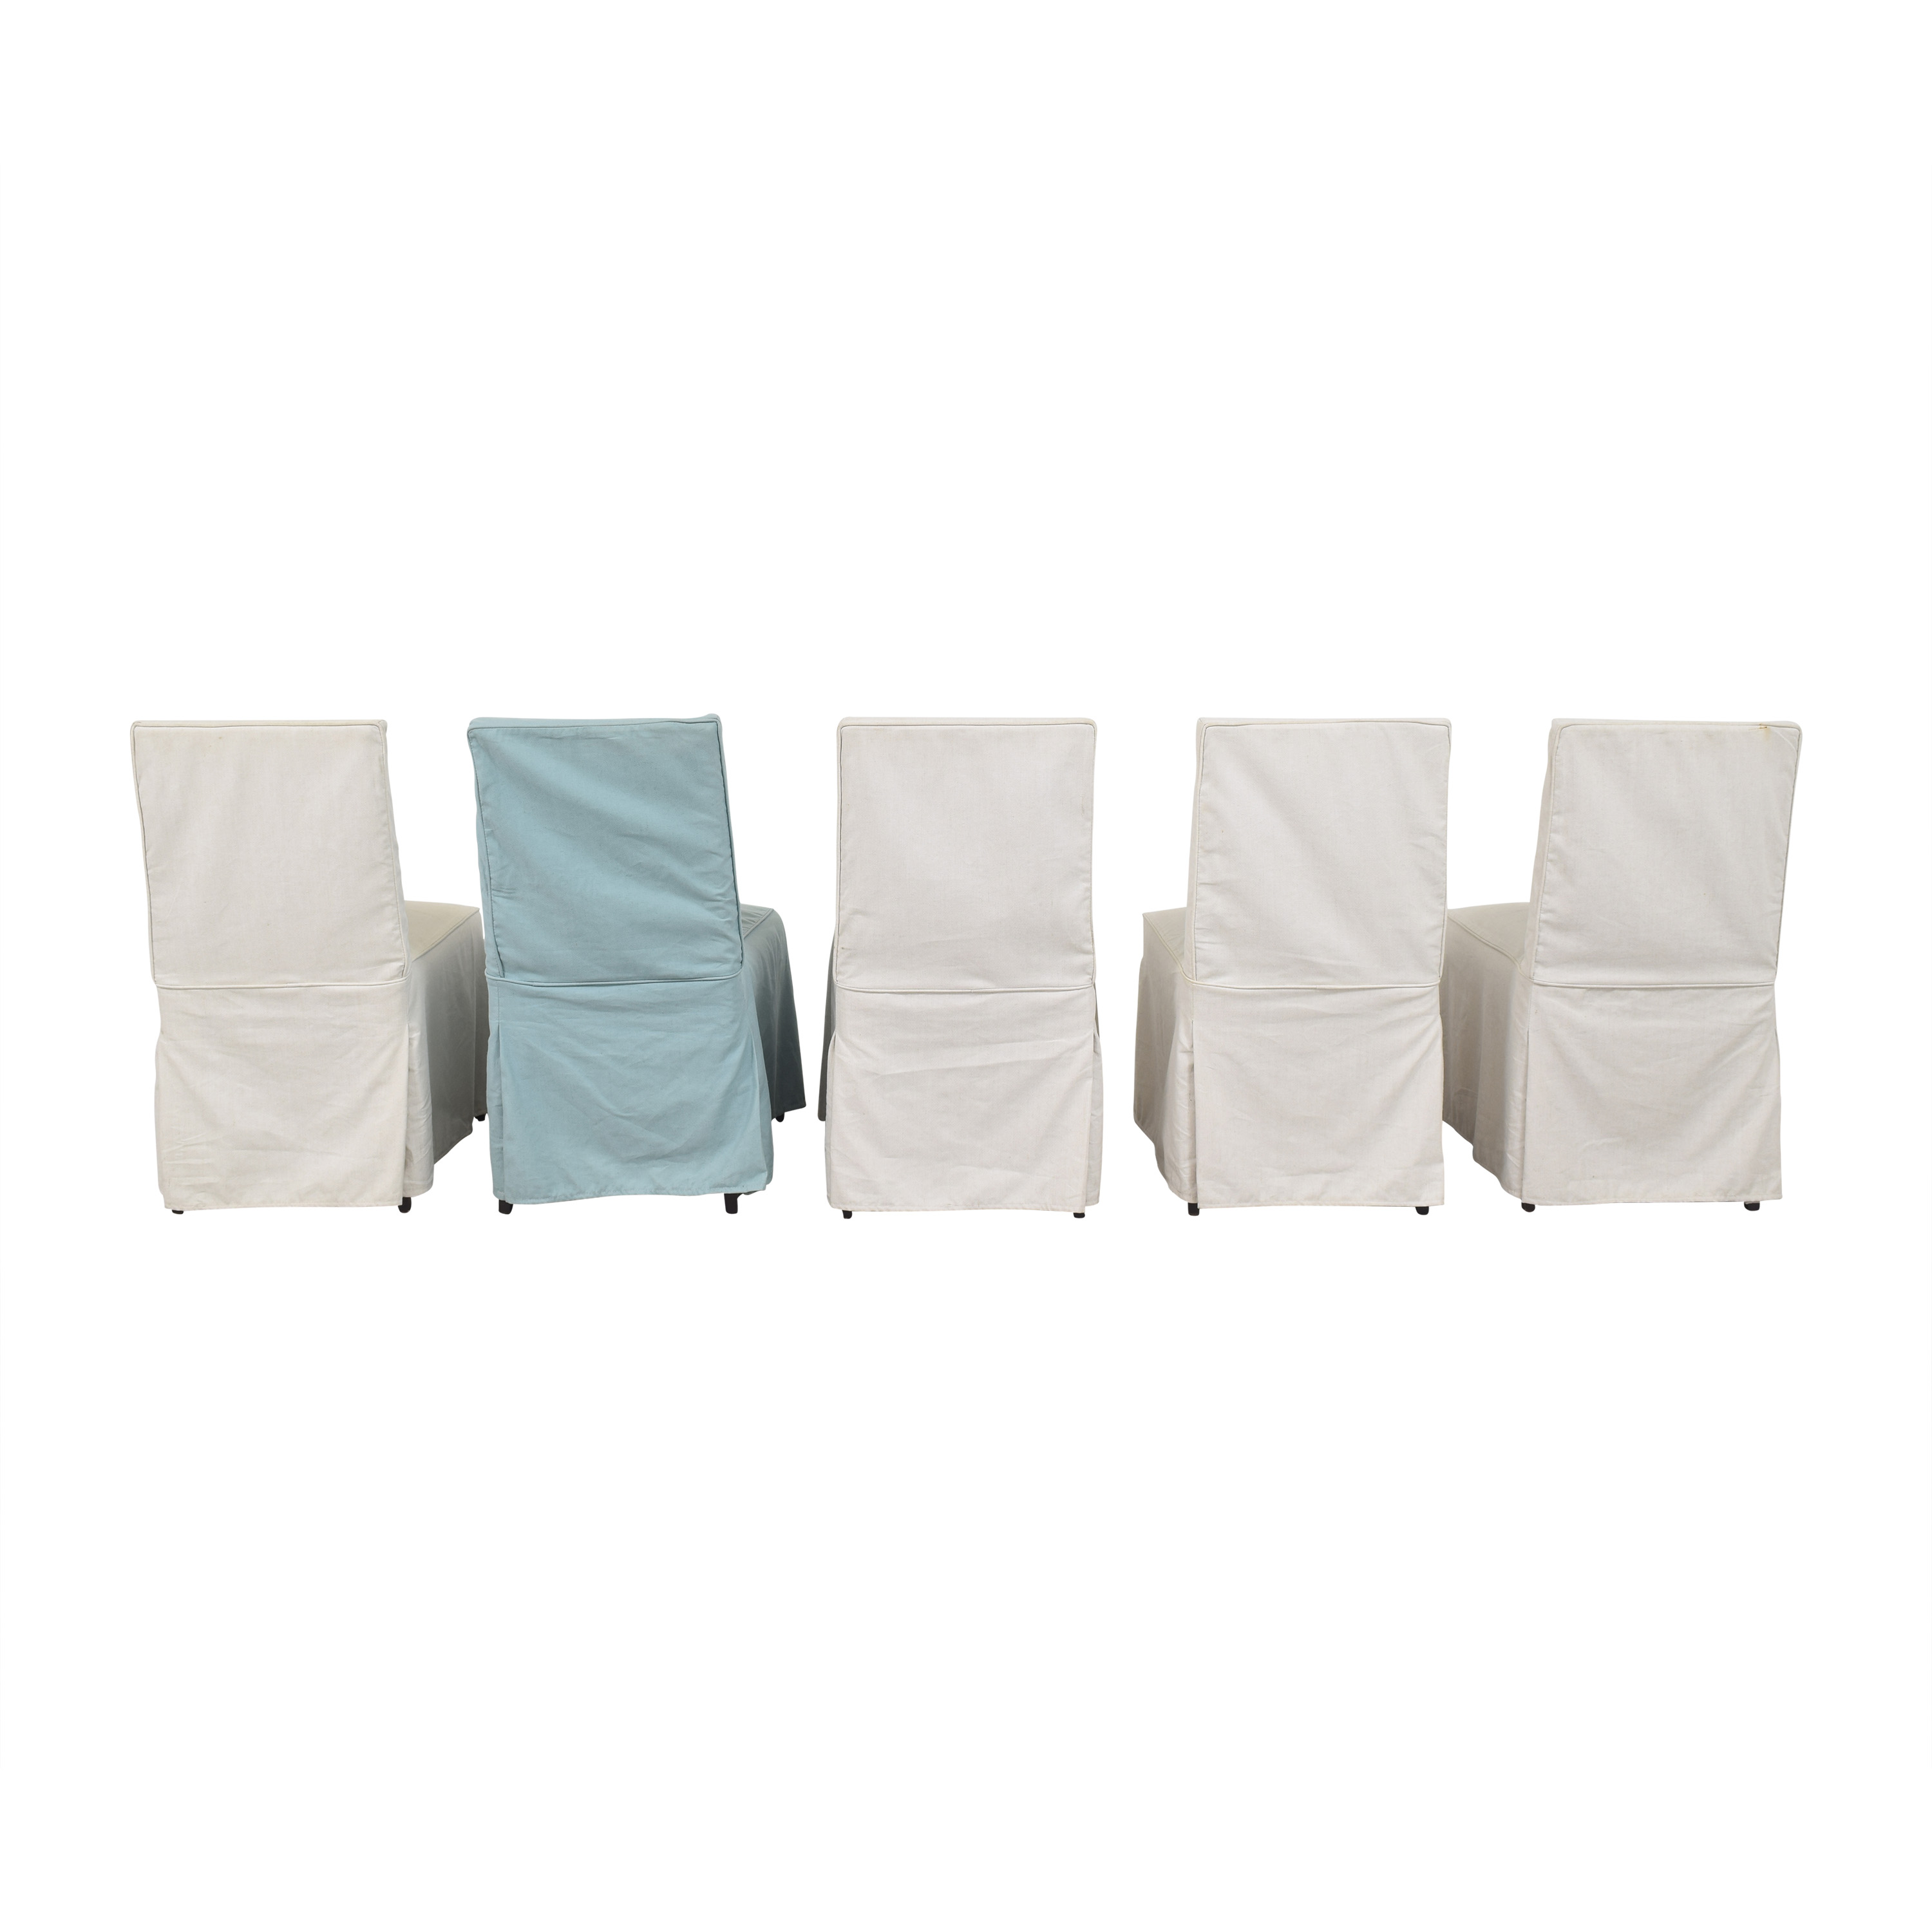 Crate & Barrel Crate & Barrel Slipcovered Dining Chairs nj